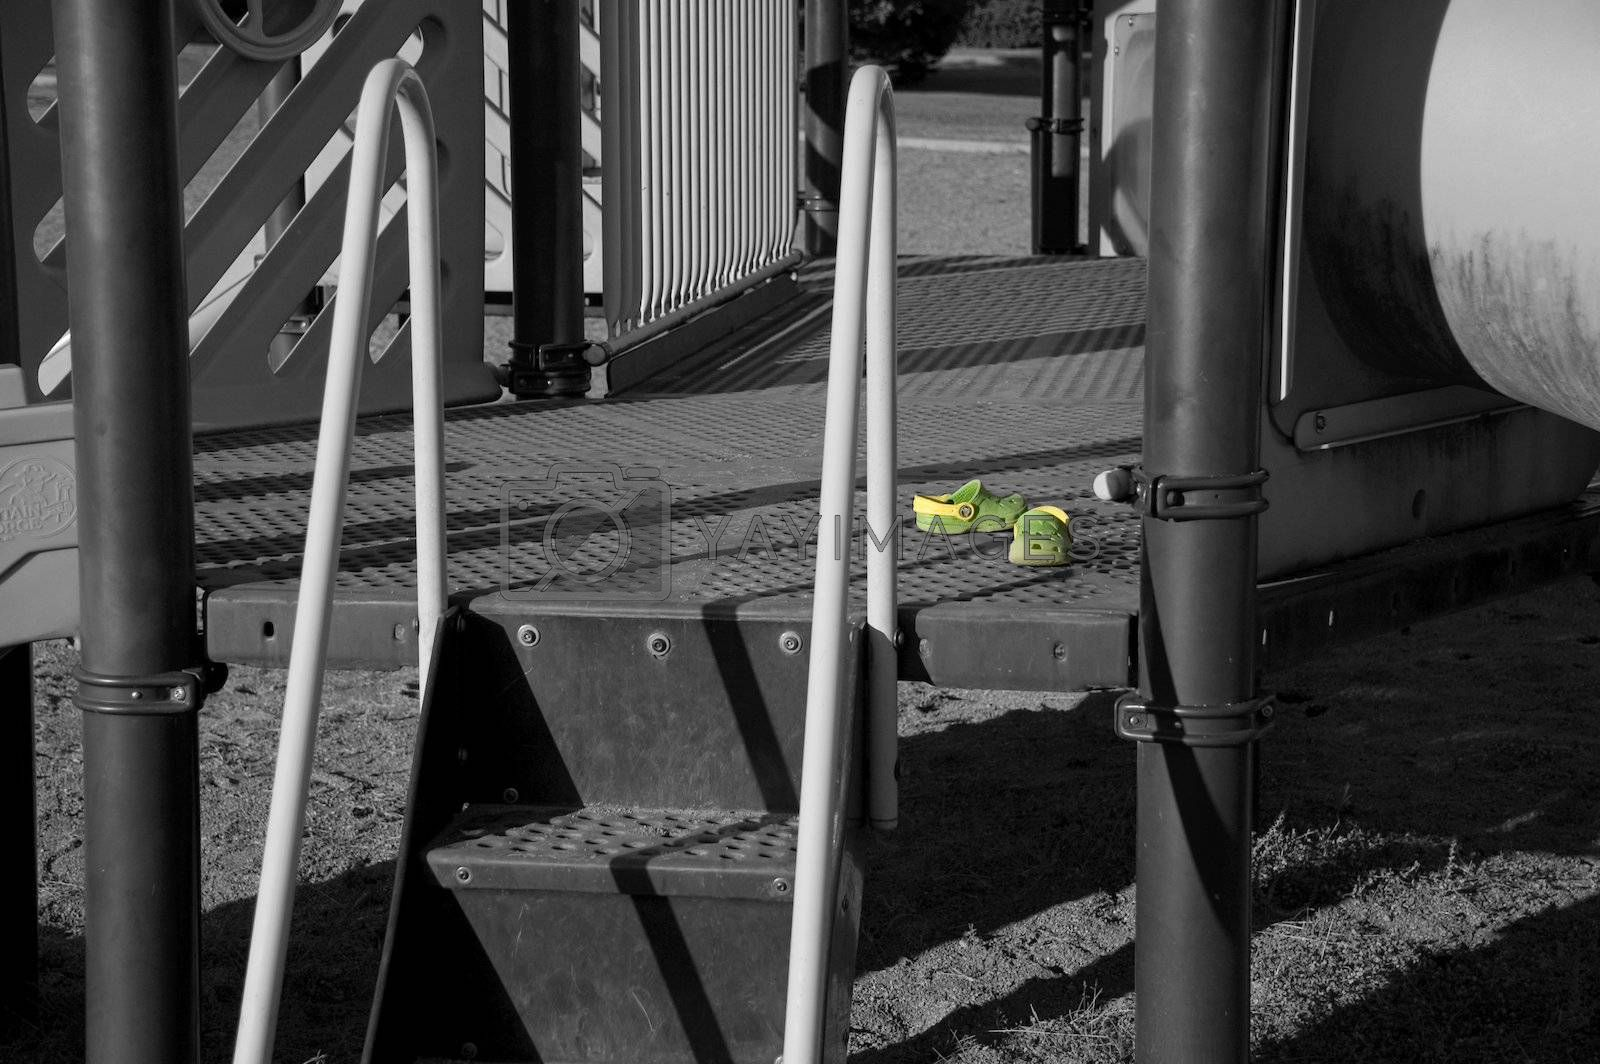 A pair of green kid's shoes on the playground, only the shoes are color.